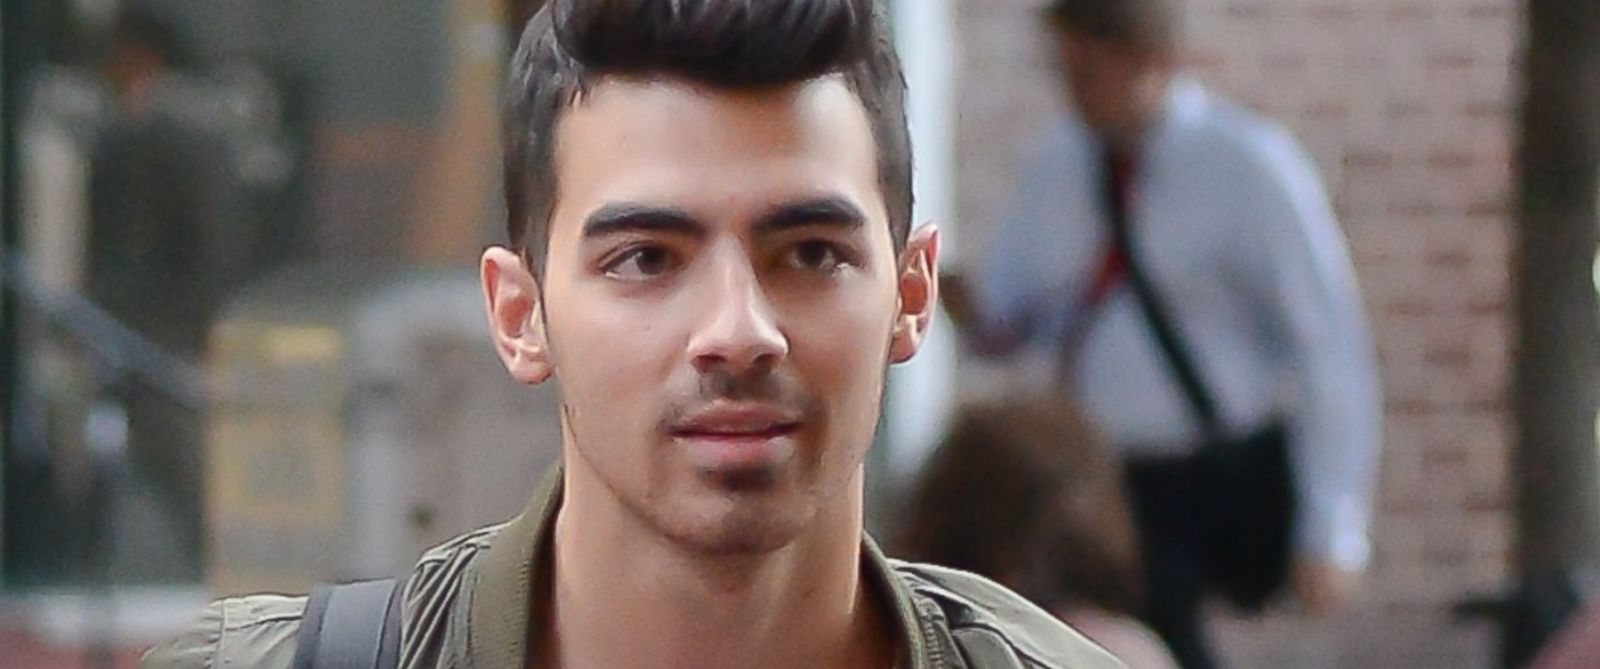 PHOTO: Singer Joe Jonas is seen in Soho on Aug. 7, 2014 in New York City.